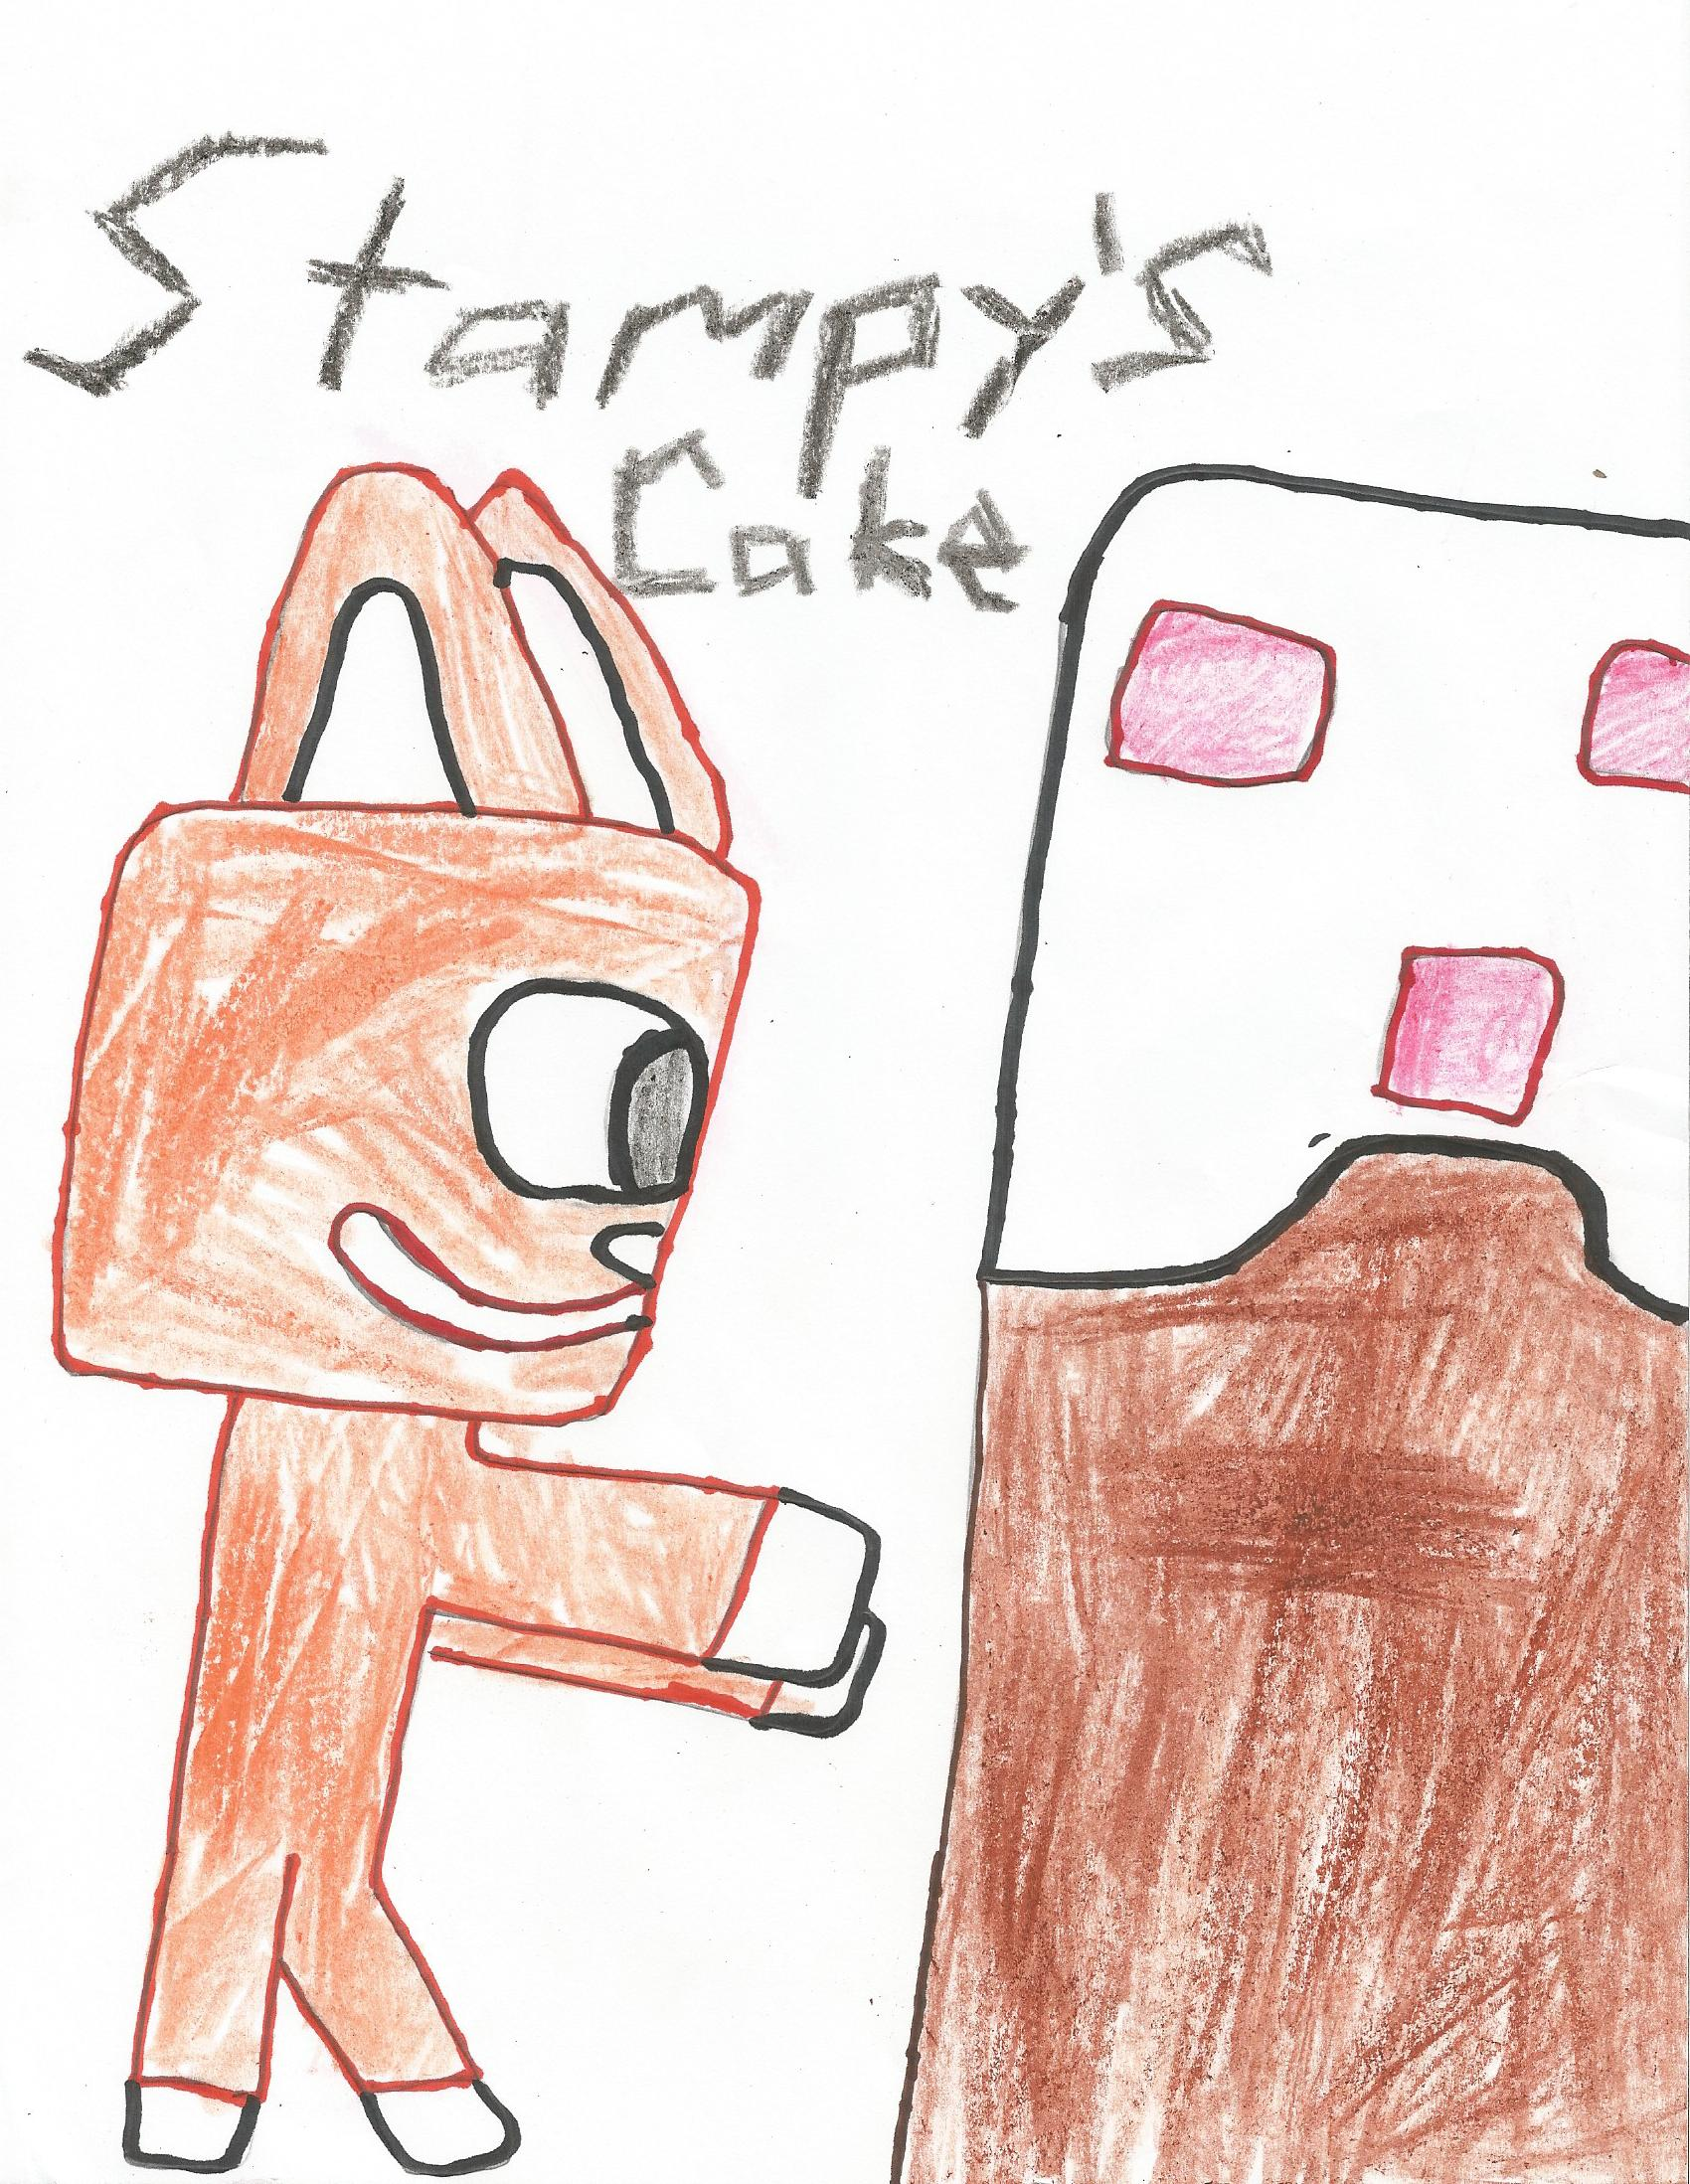 From Aiden, Stampy's Cake